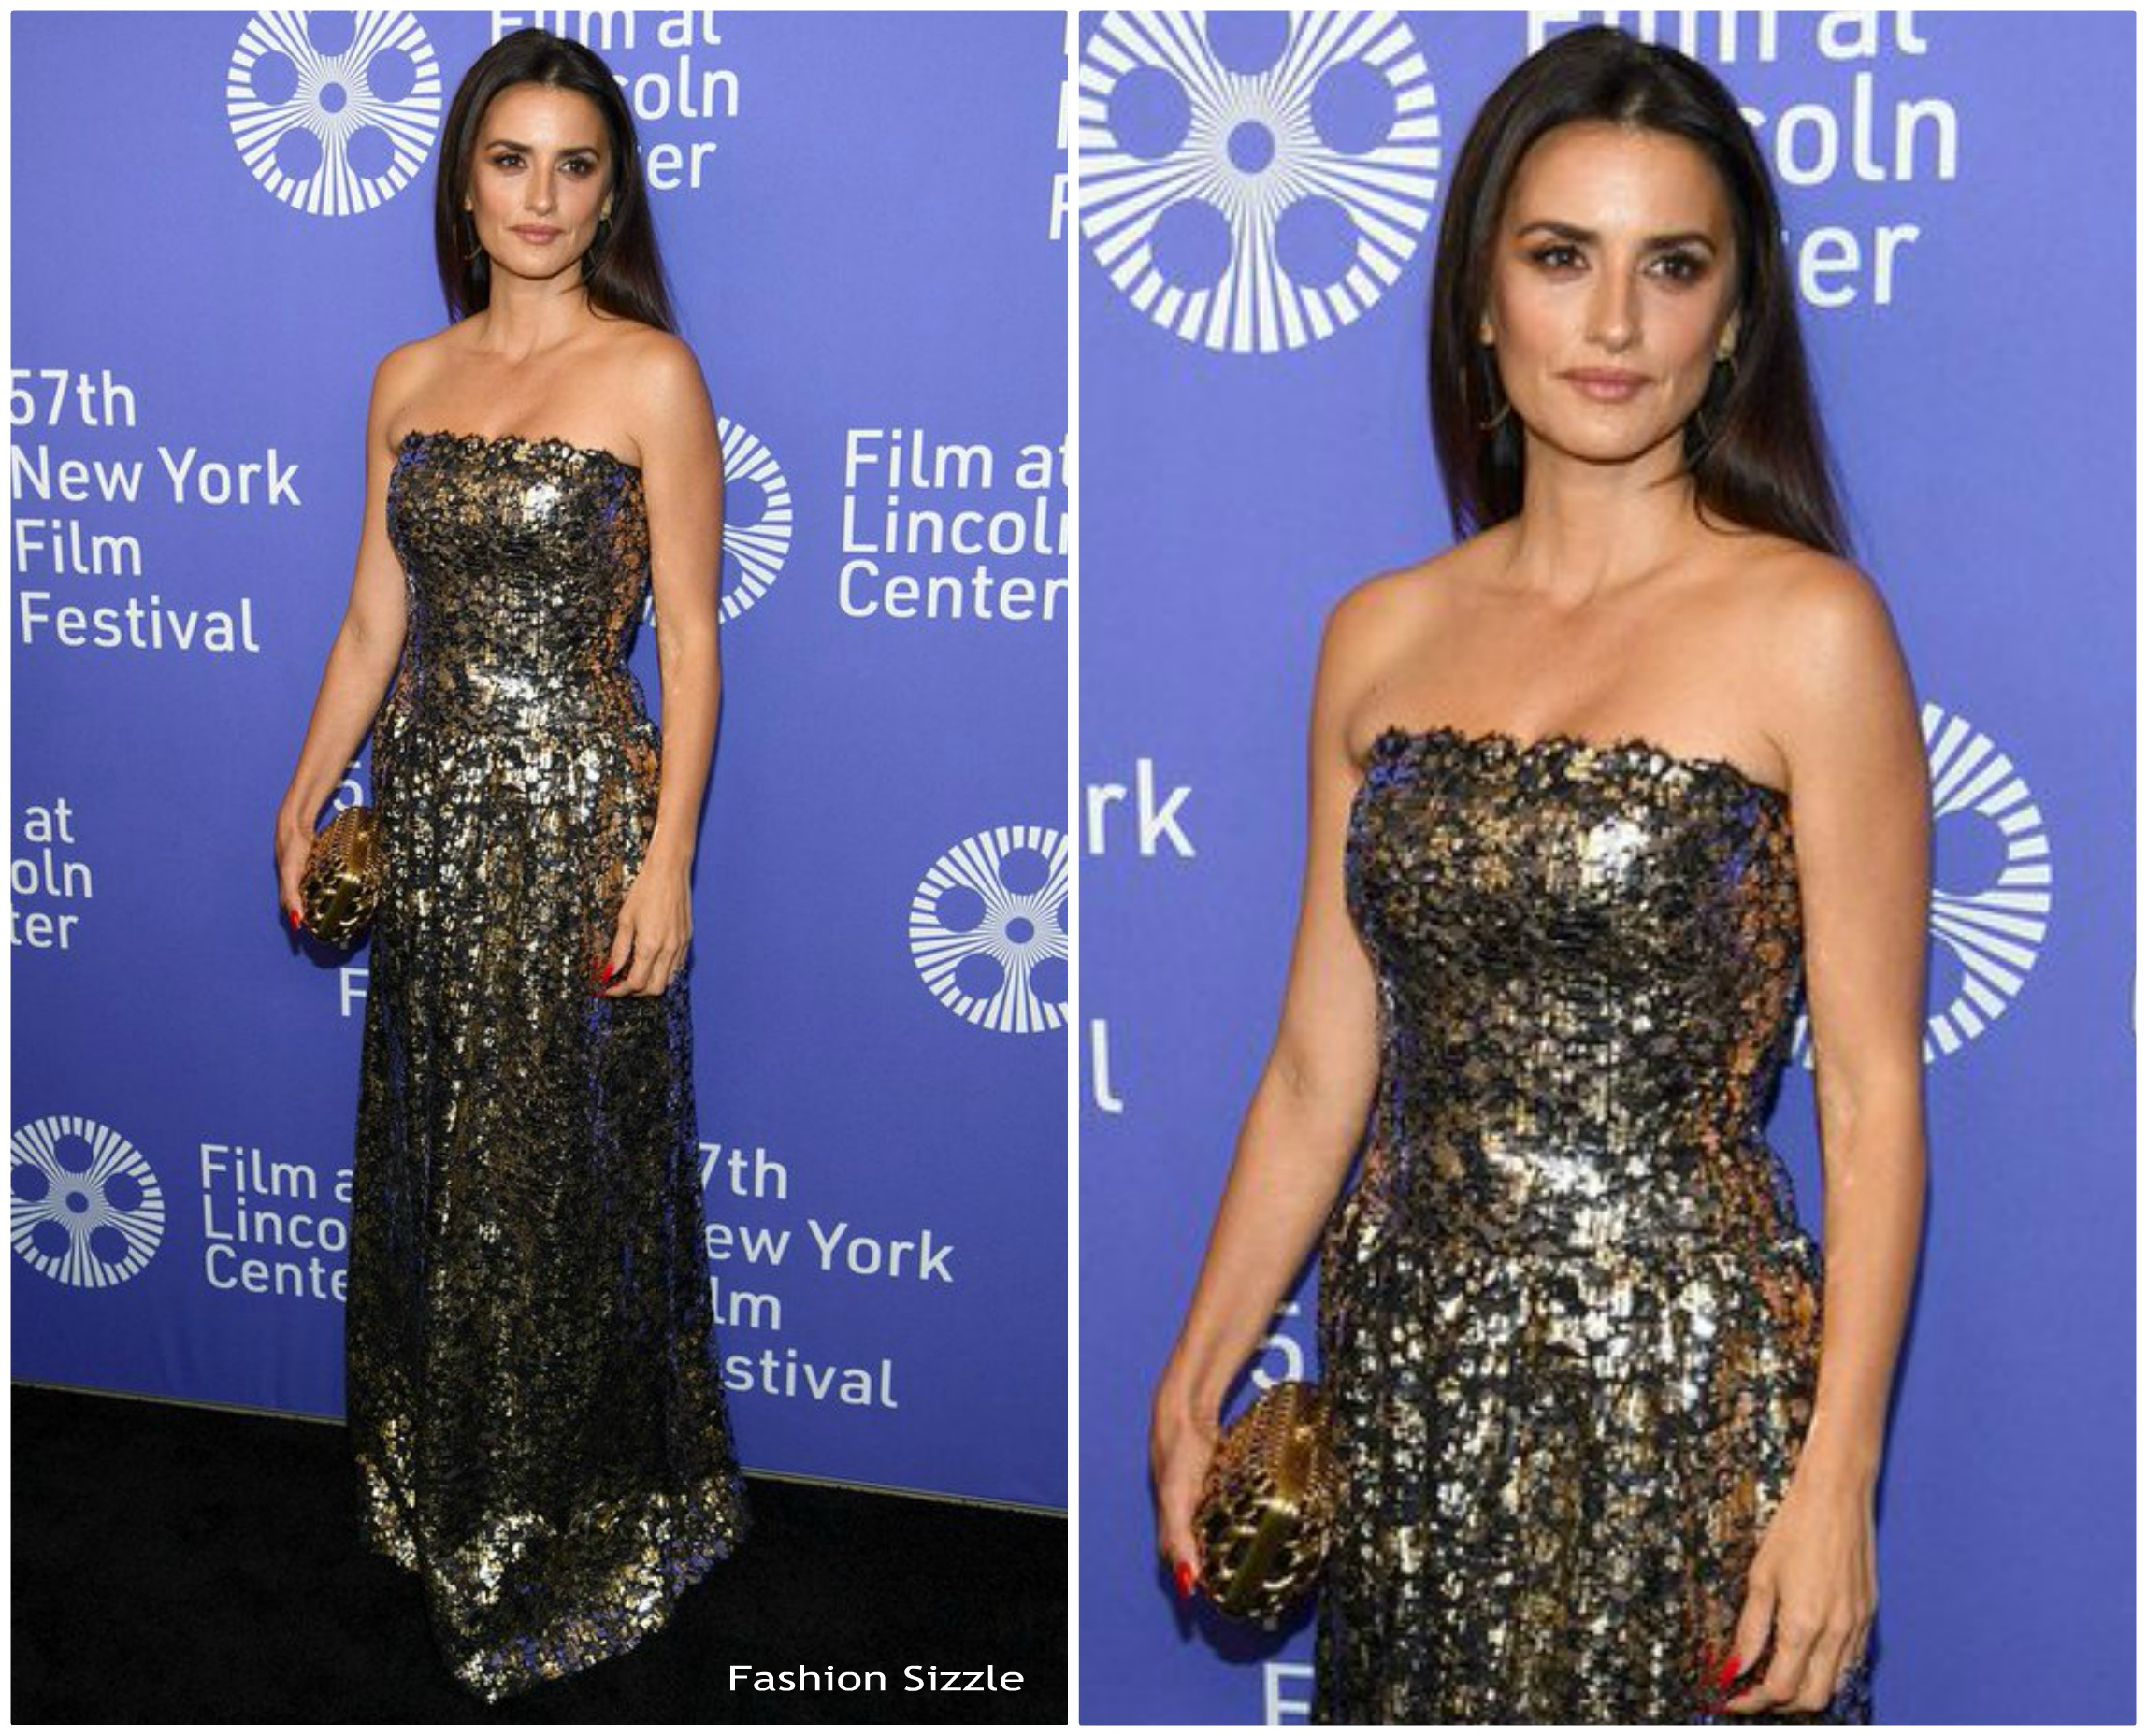 penelope-cruz-in-chanel-couture-wasp-network-new-york-film-festival-premiere